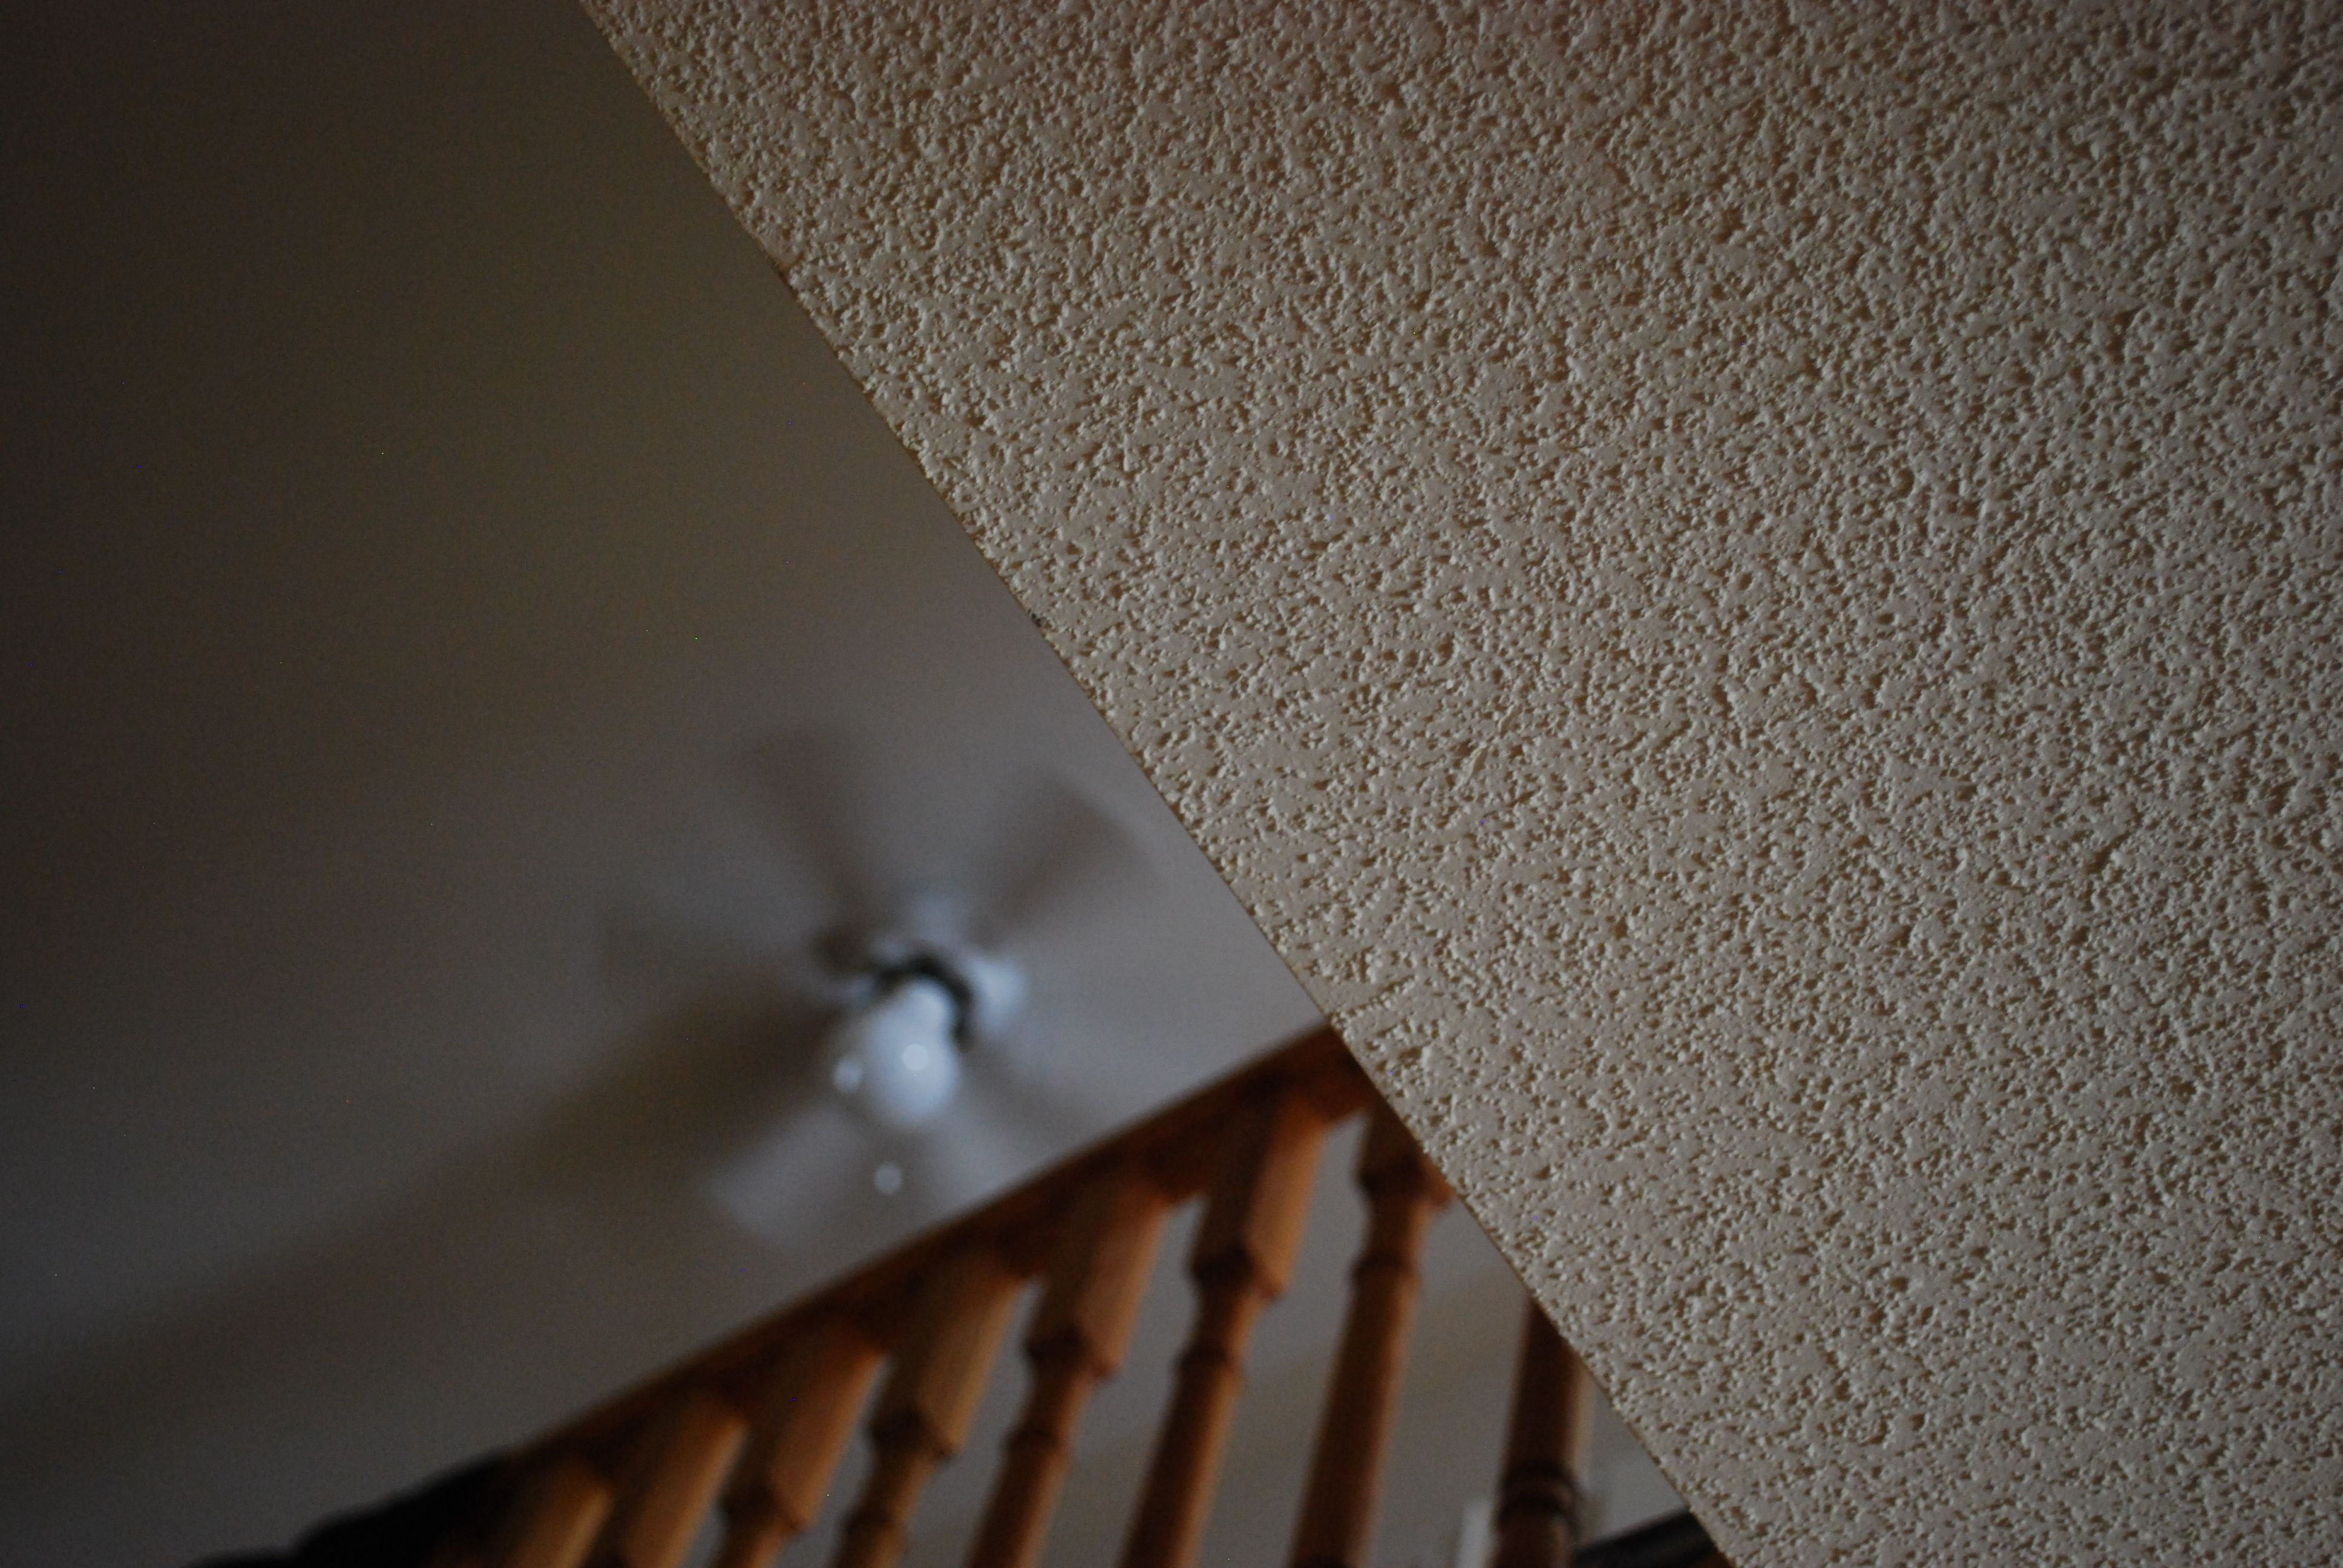 Abestos Testing and removal for Popcorn Ceilings - Don's Ceilings